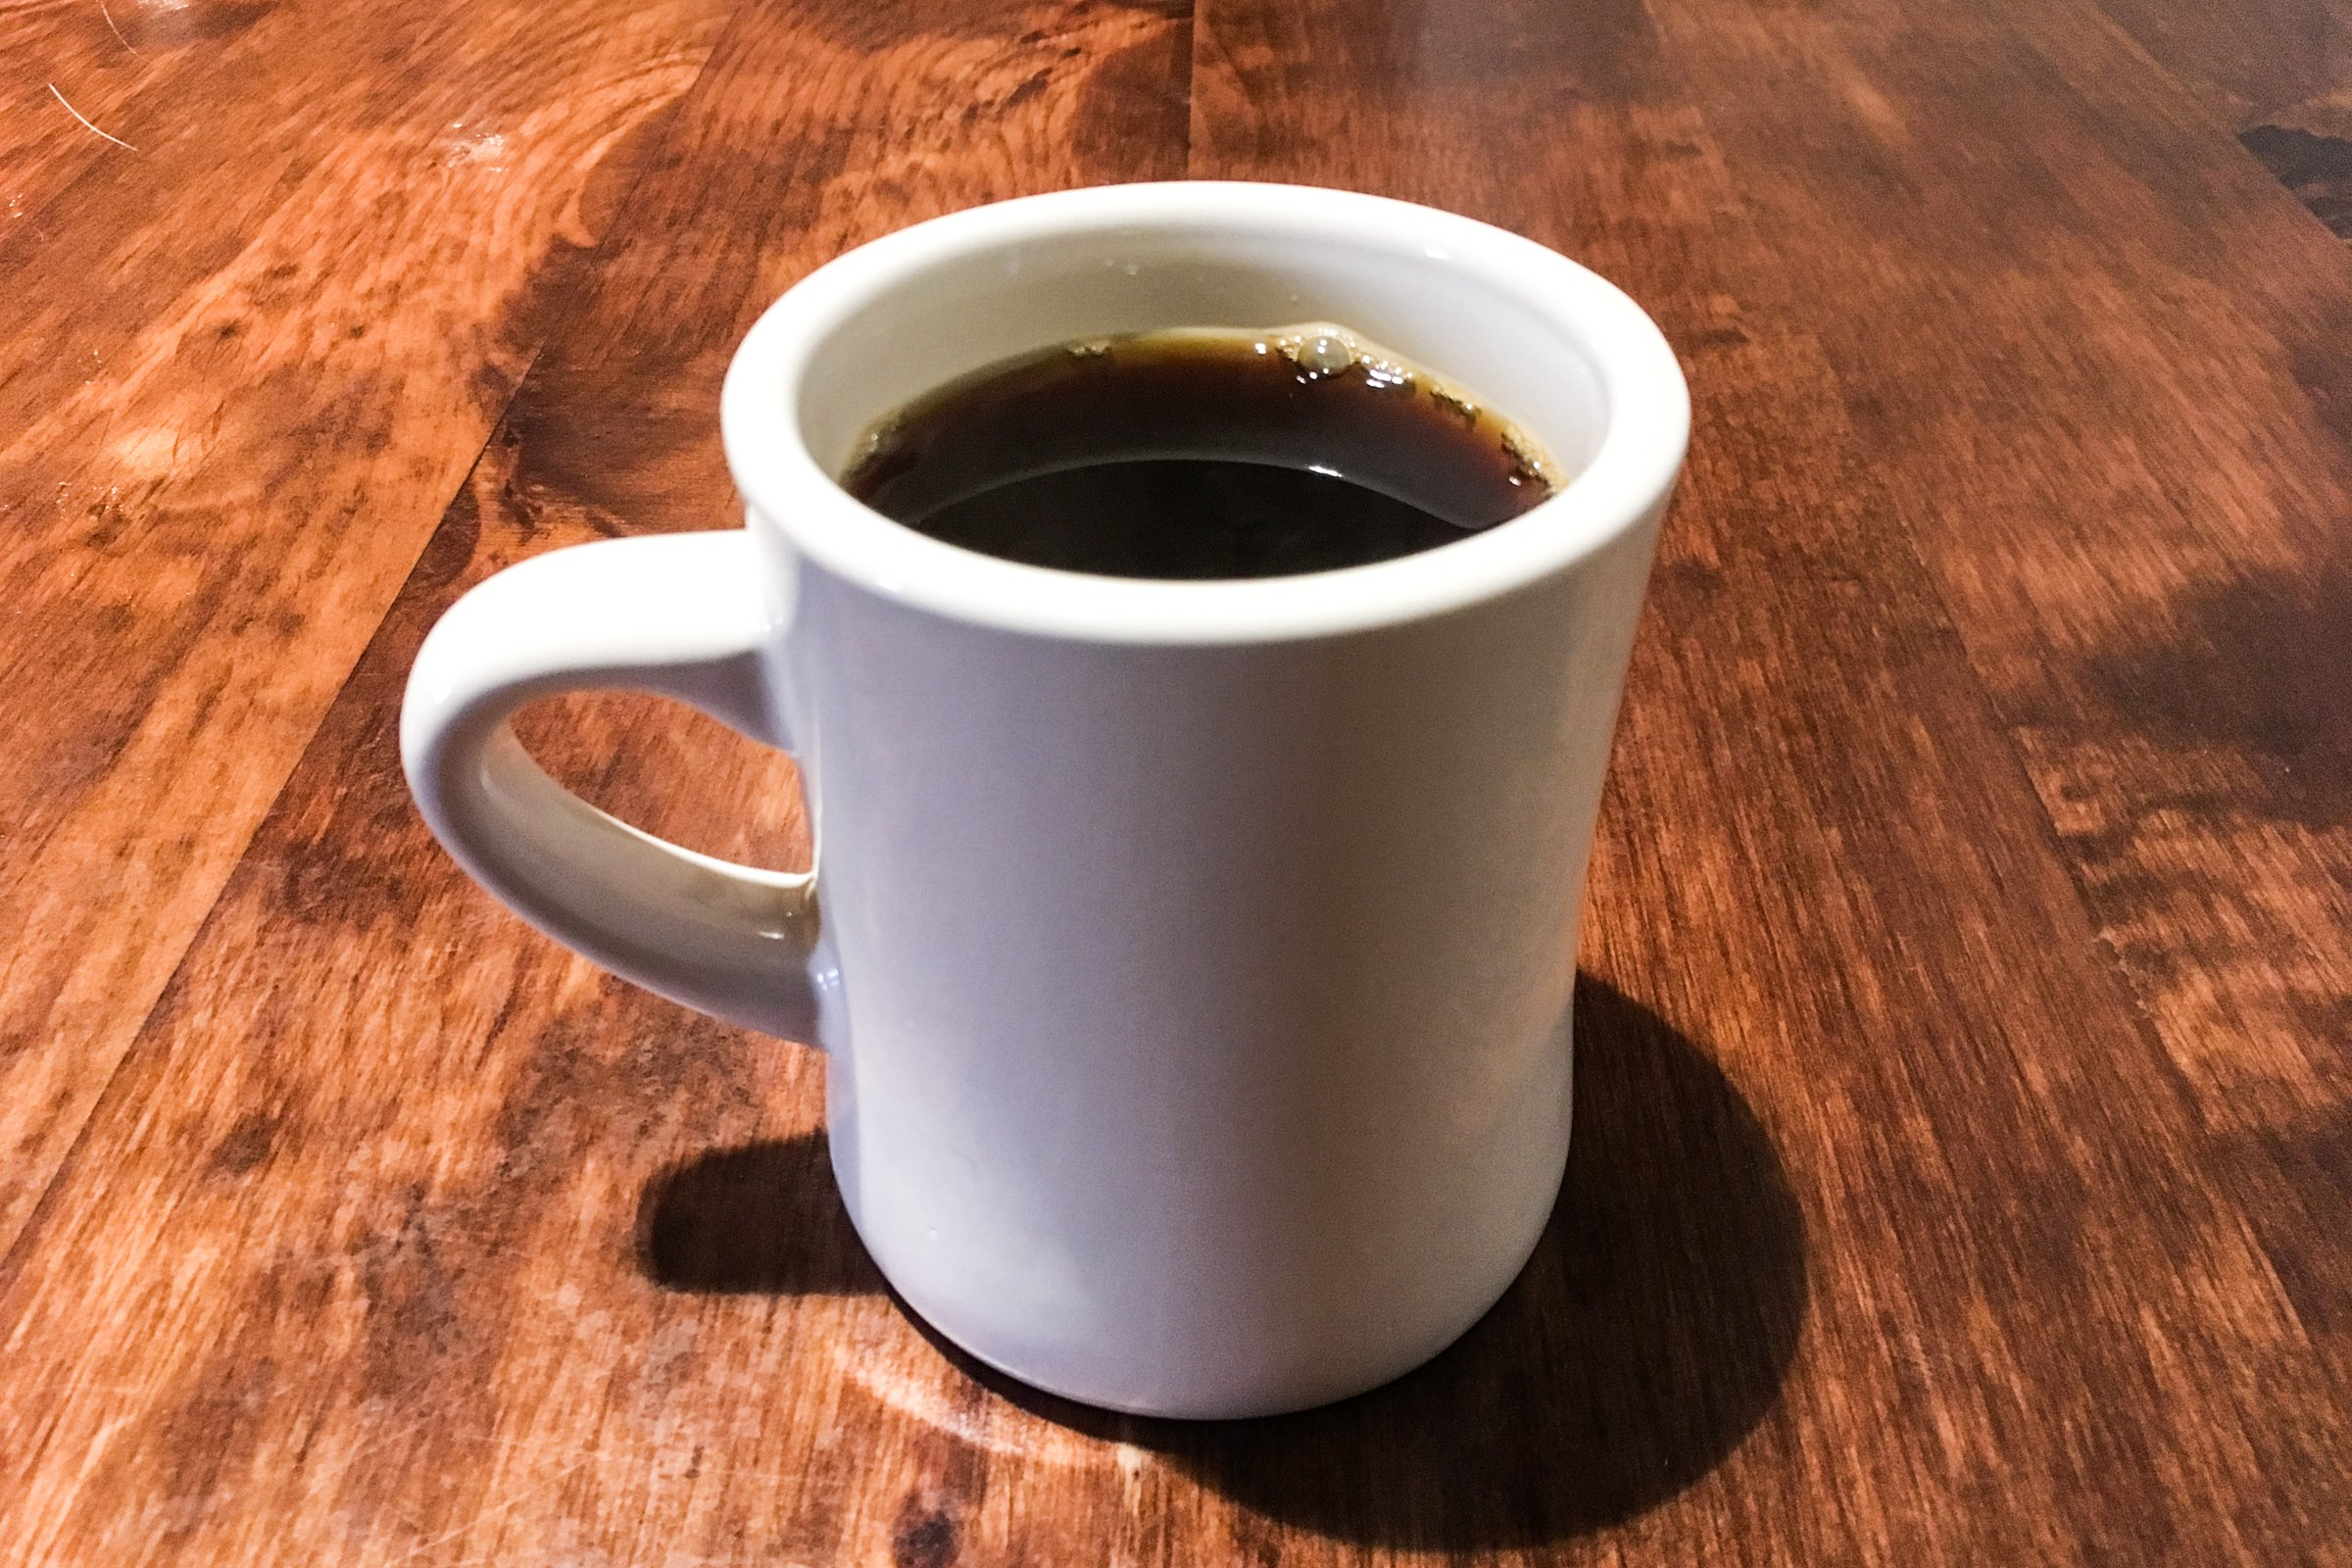 White Mug of Coffee on Wood Table